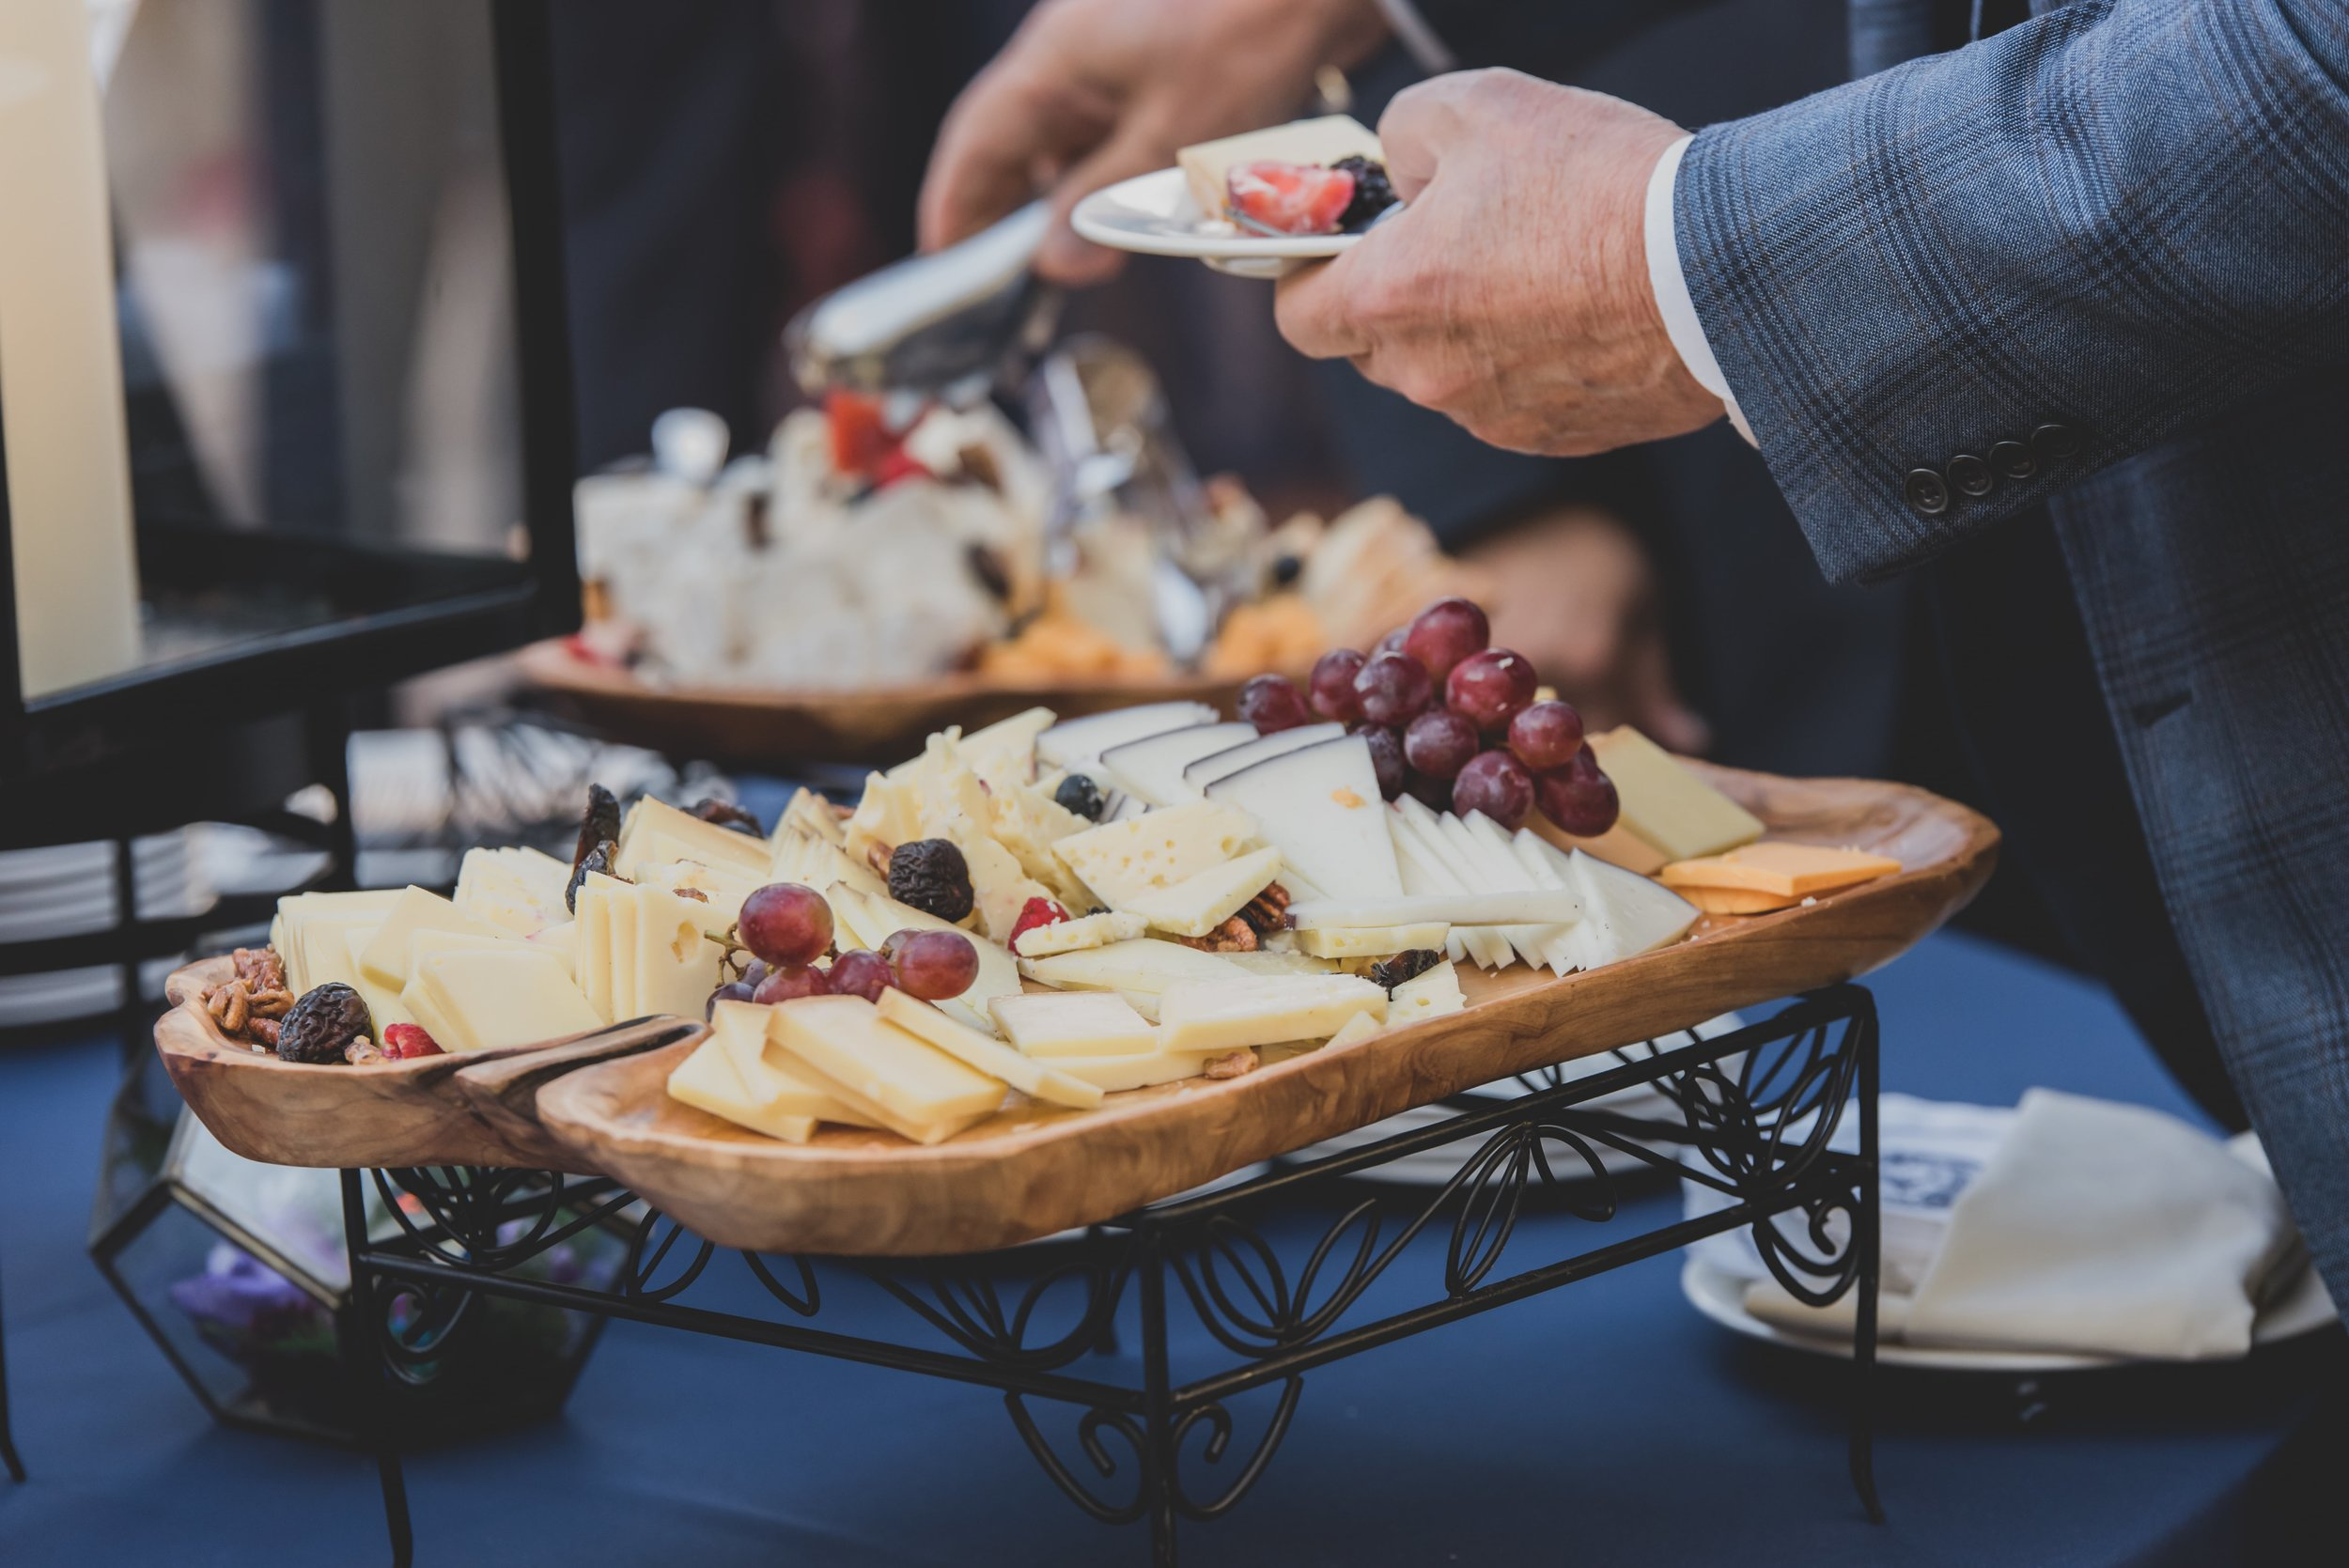 Summer Wedding Trends 2019 - Charcuterie Boards